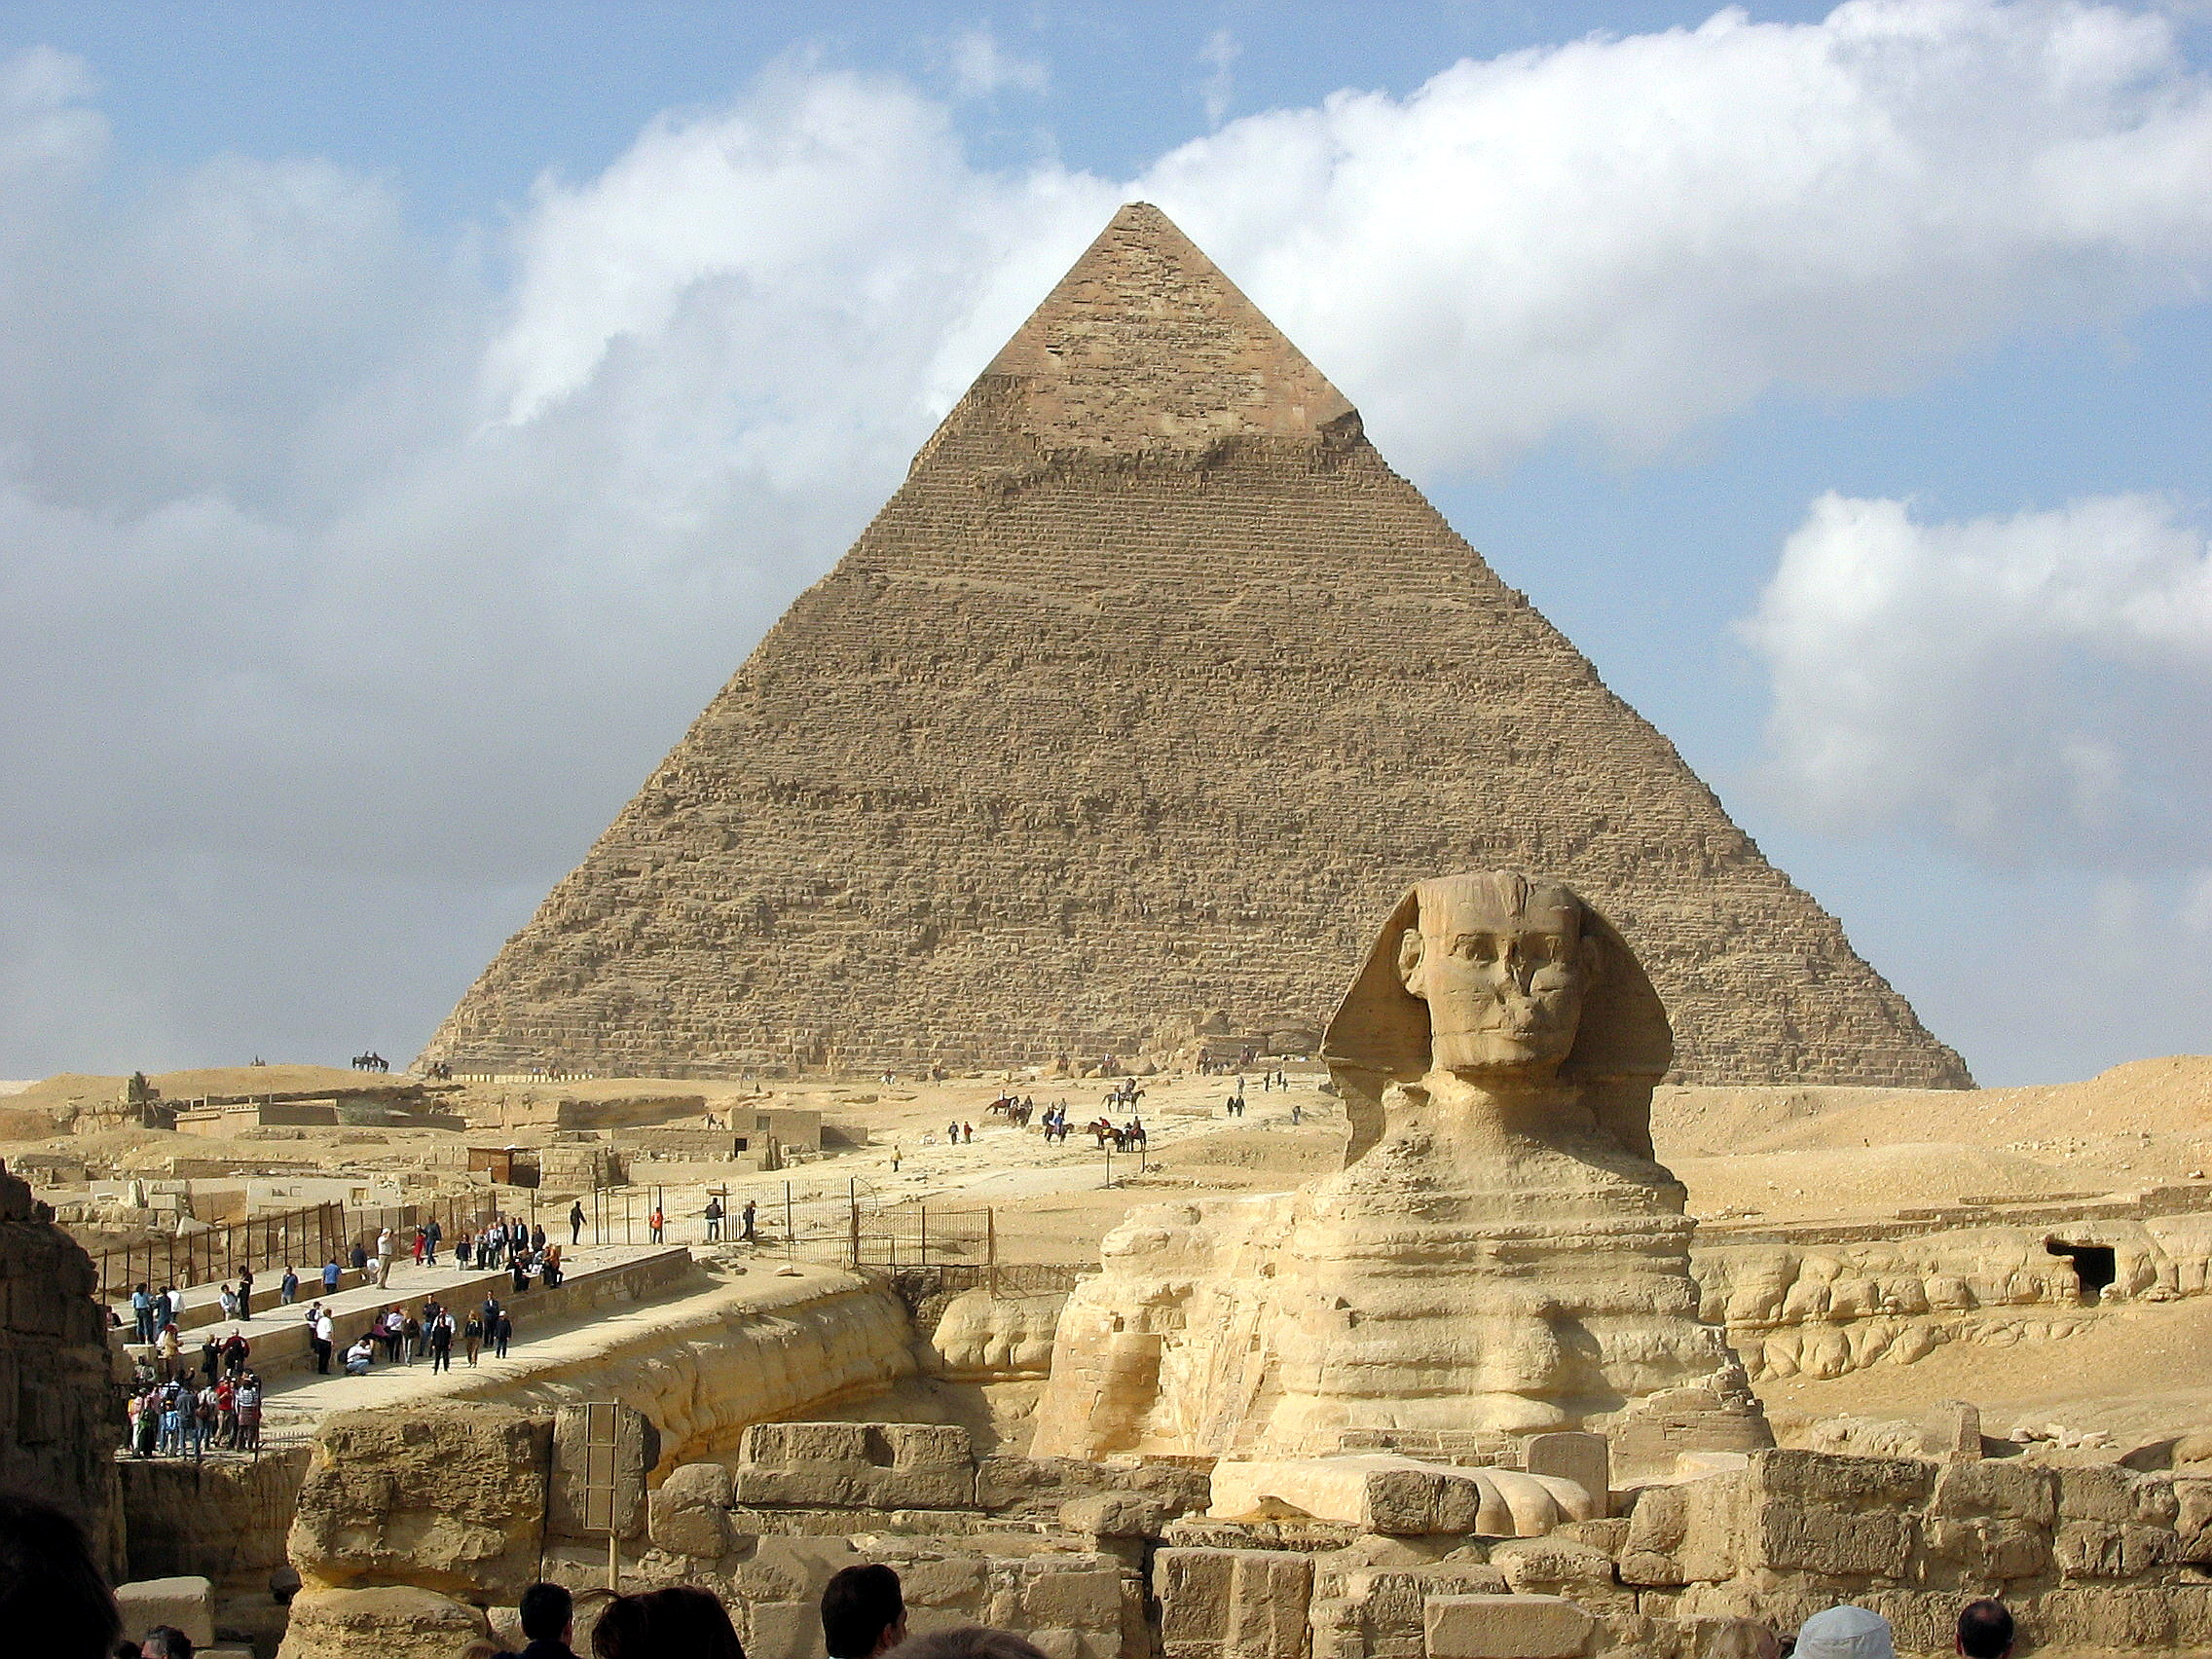 File:Egypt.Giza.Sphinx.02.jpg - Wikipedia, the free encyclopedia